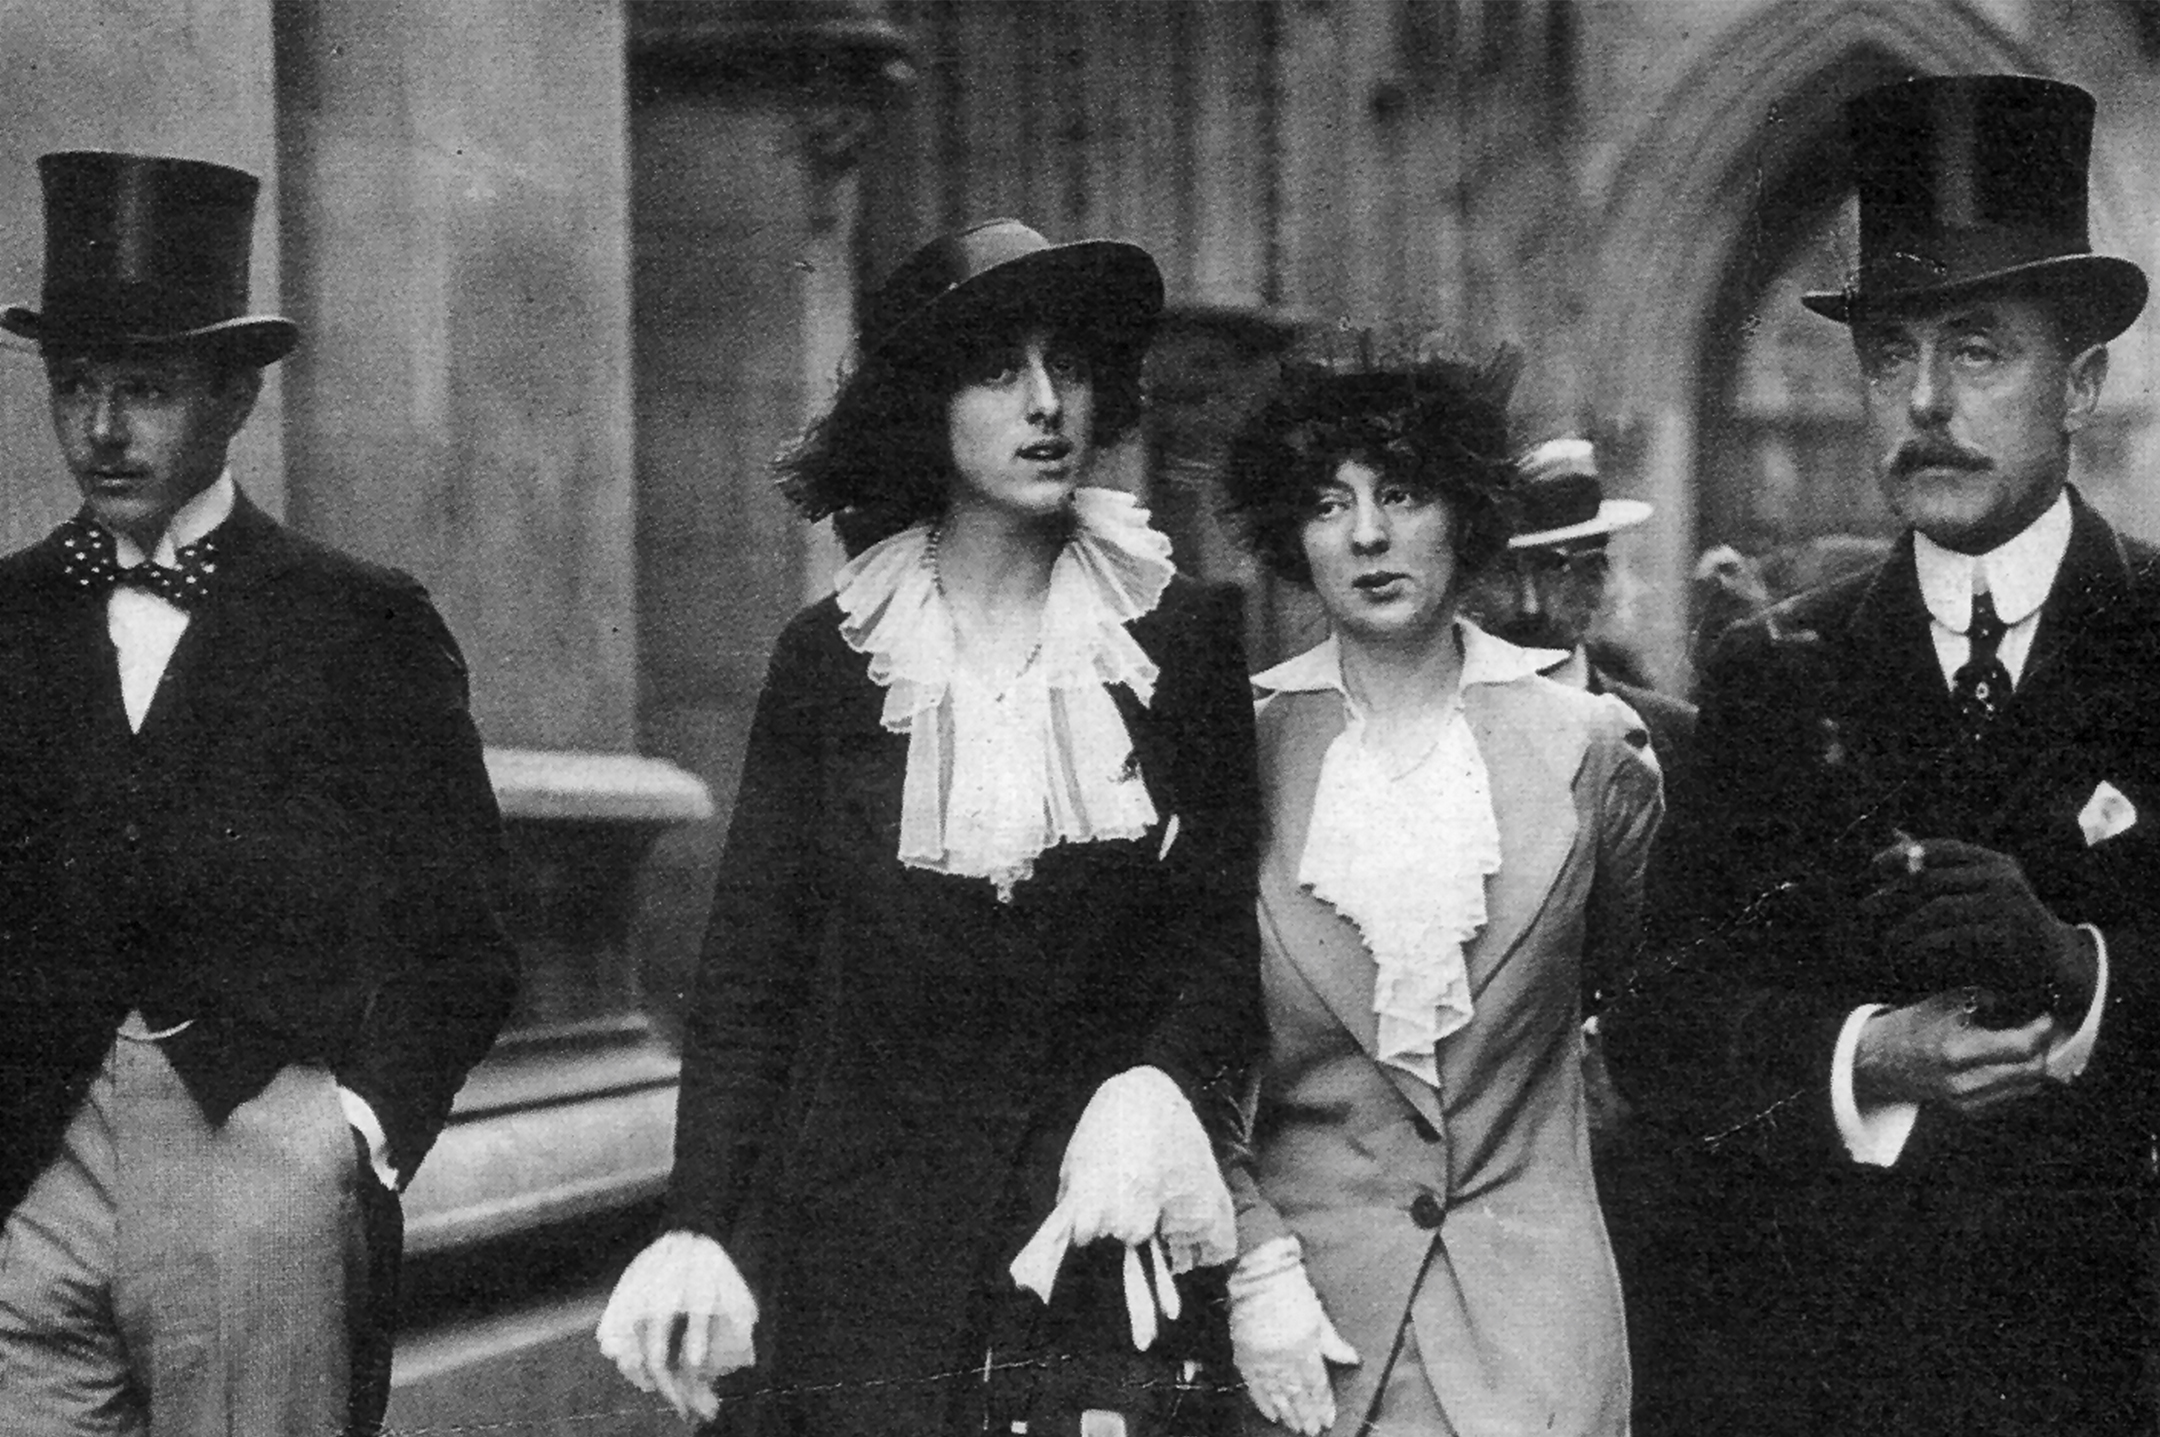 Vita Sackville-West, of Sissinghurst in Kent (second from left)